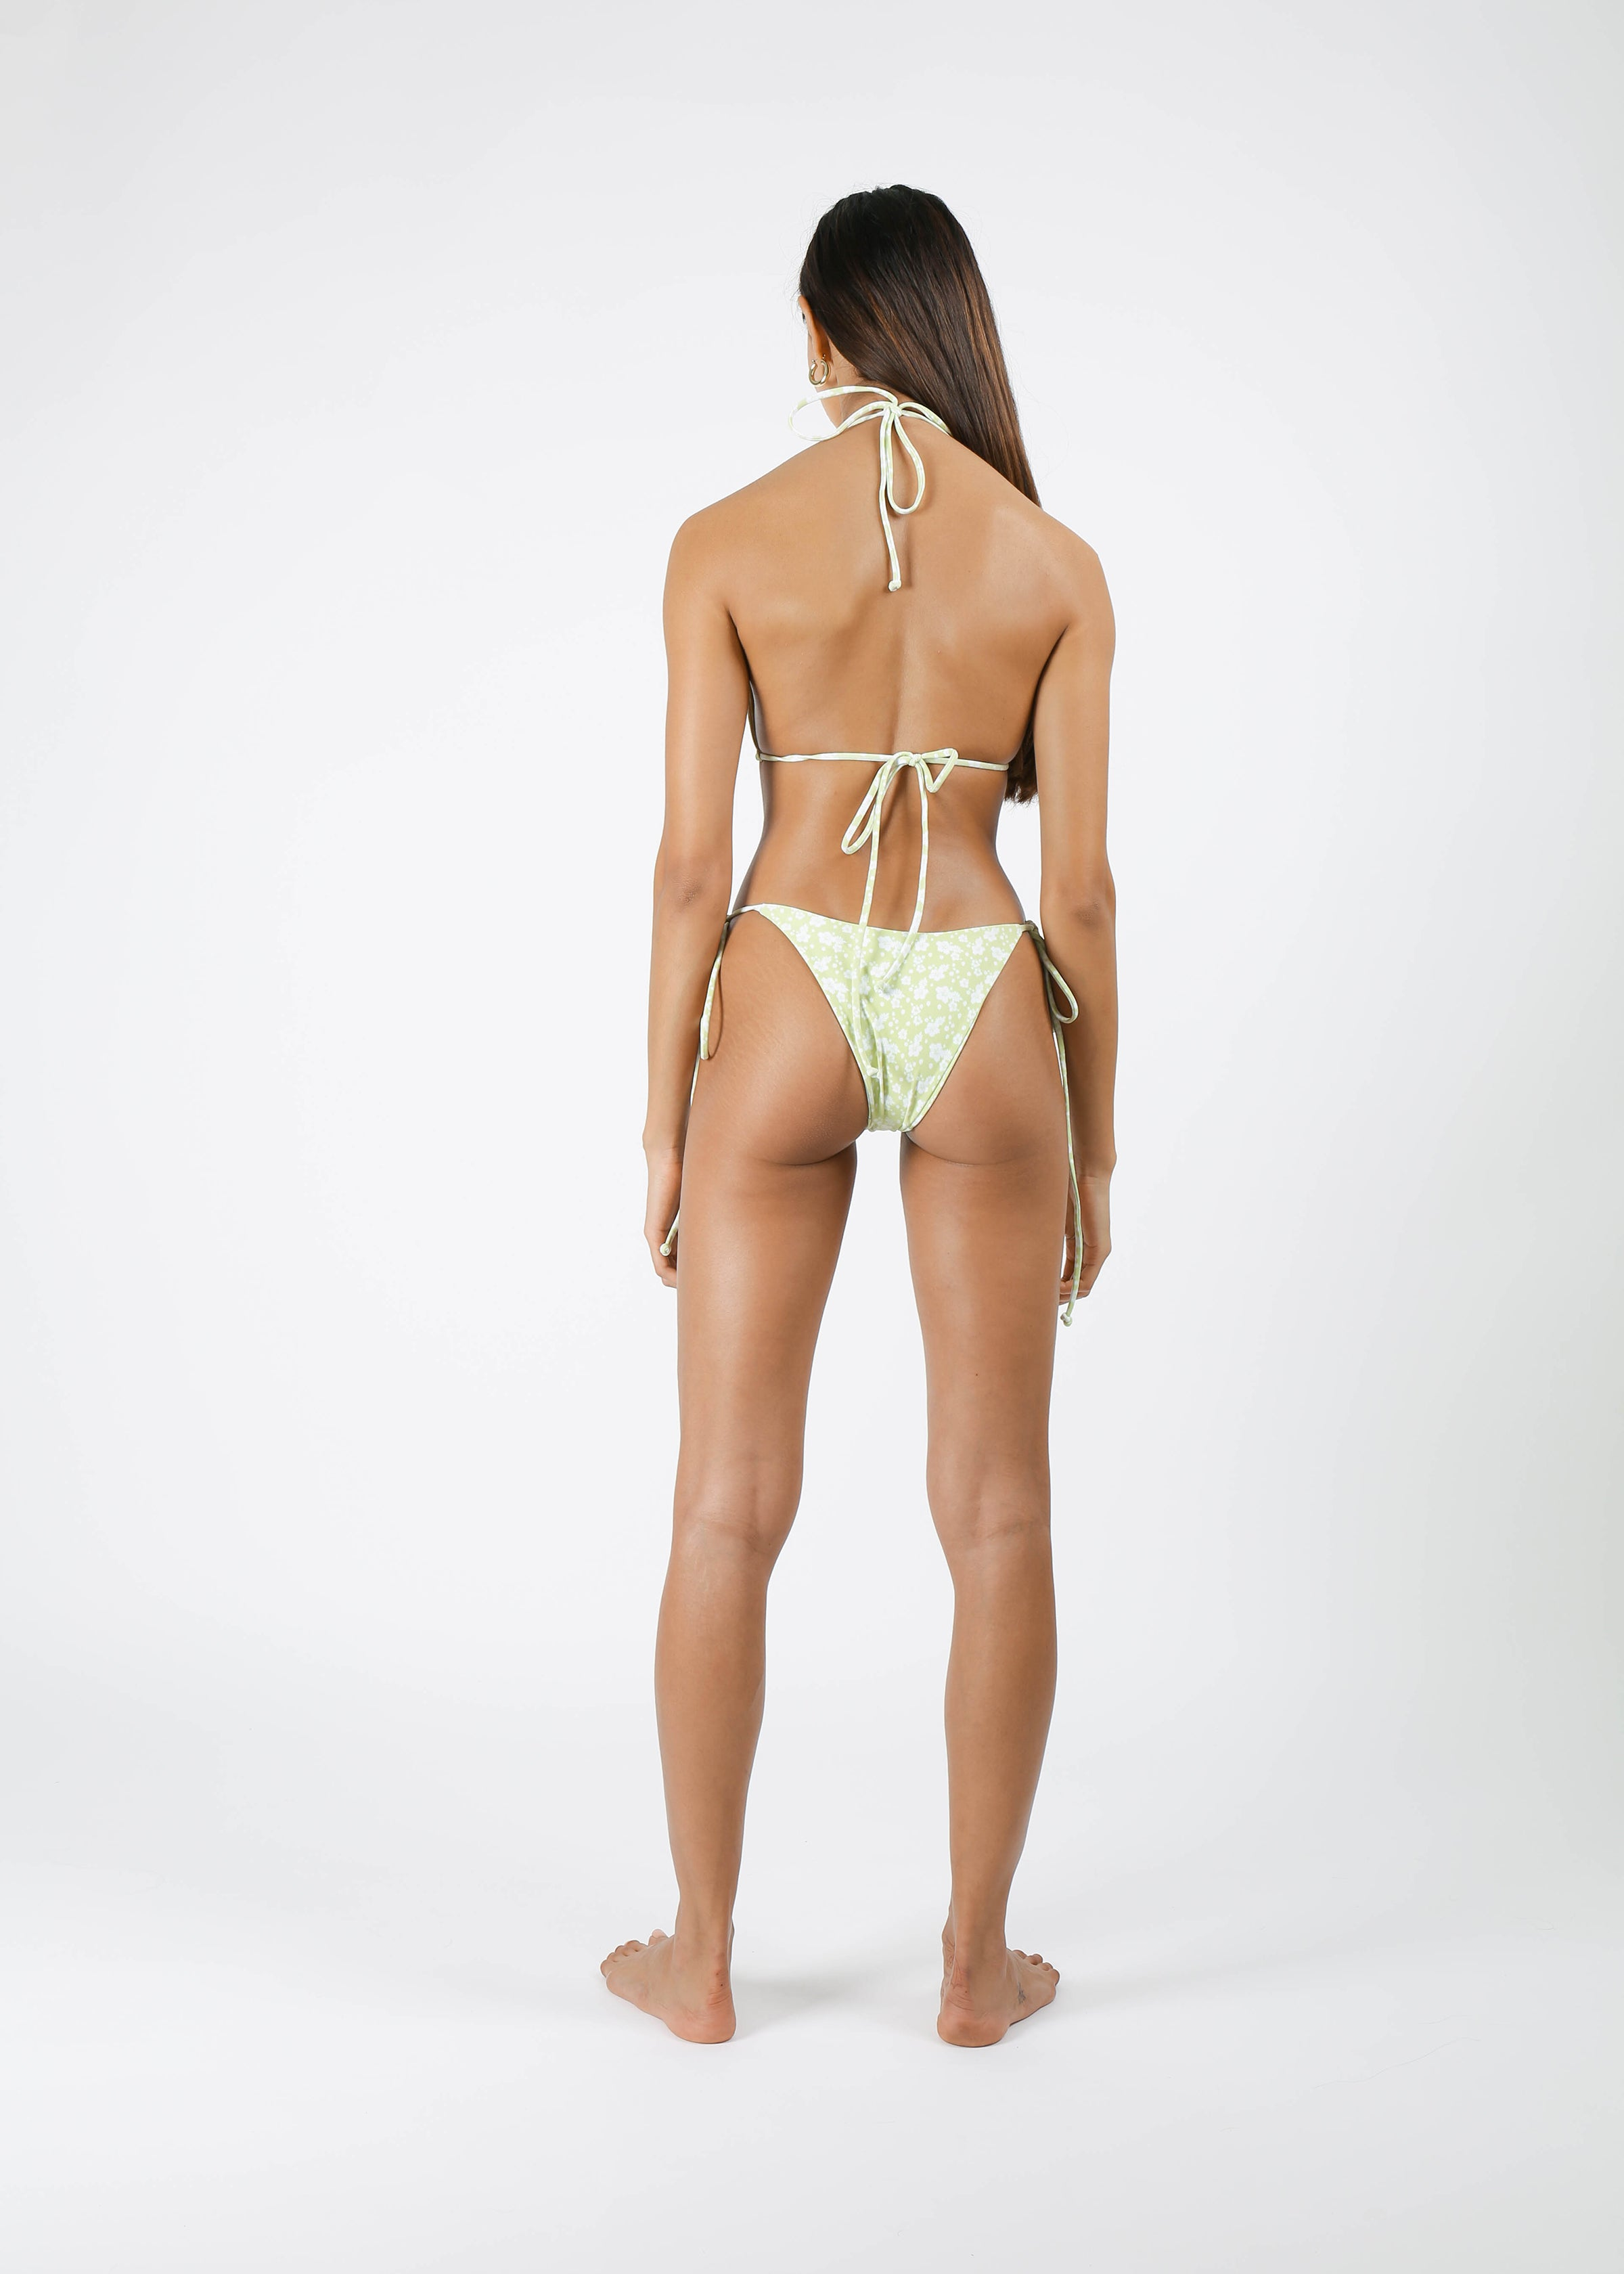 Kaia Bottom - Eco Hawaiian